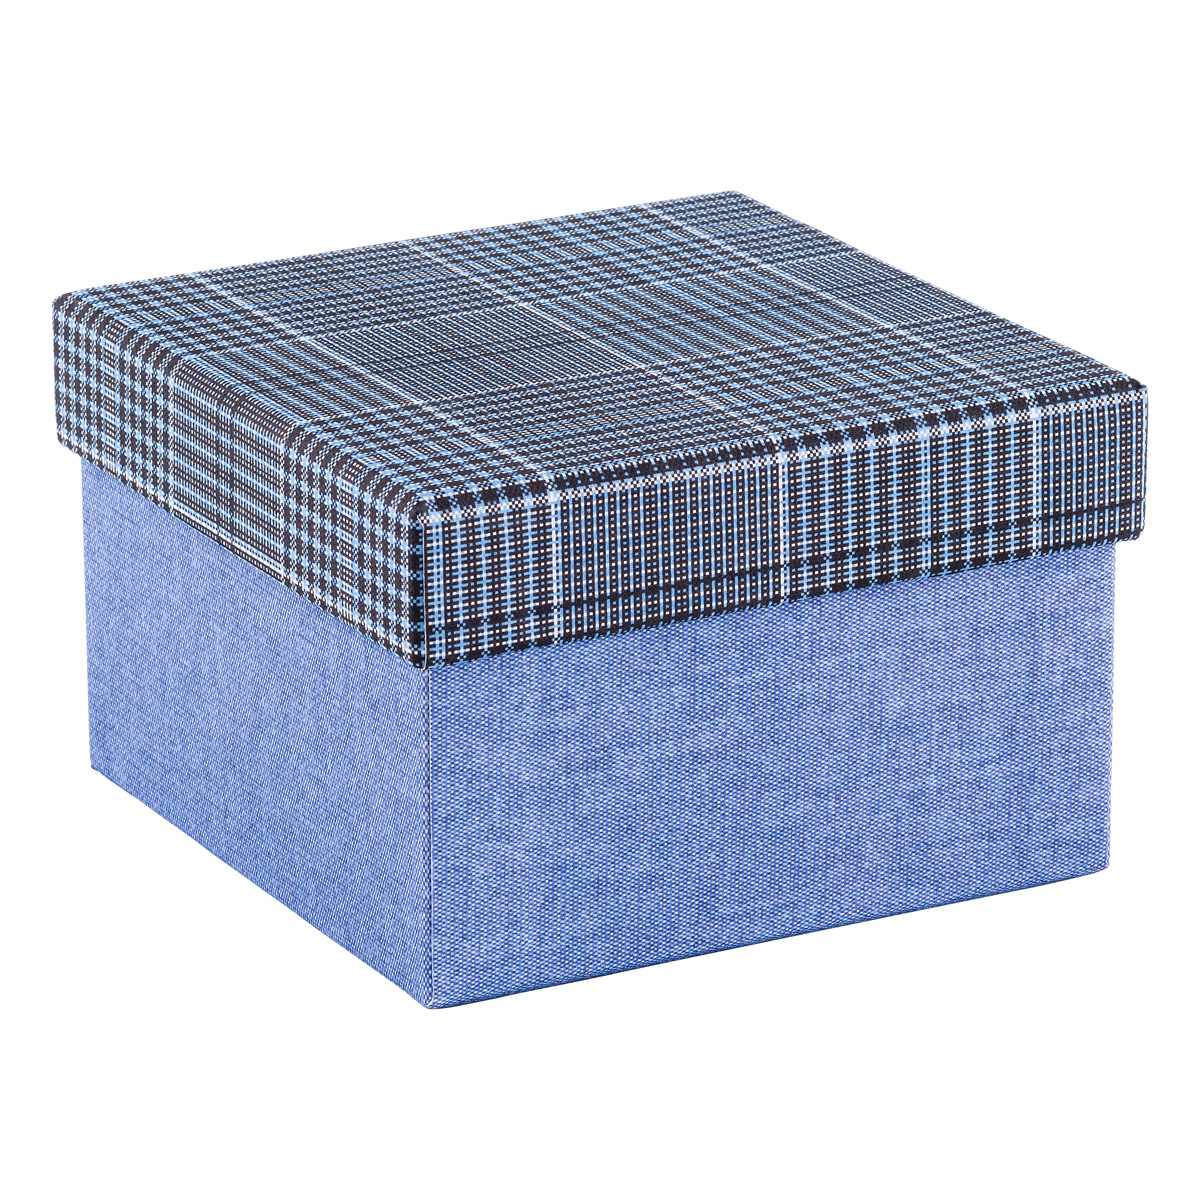 Square Blue Box With Plaid Lid